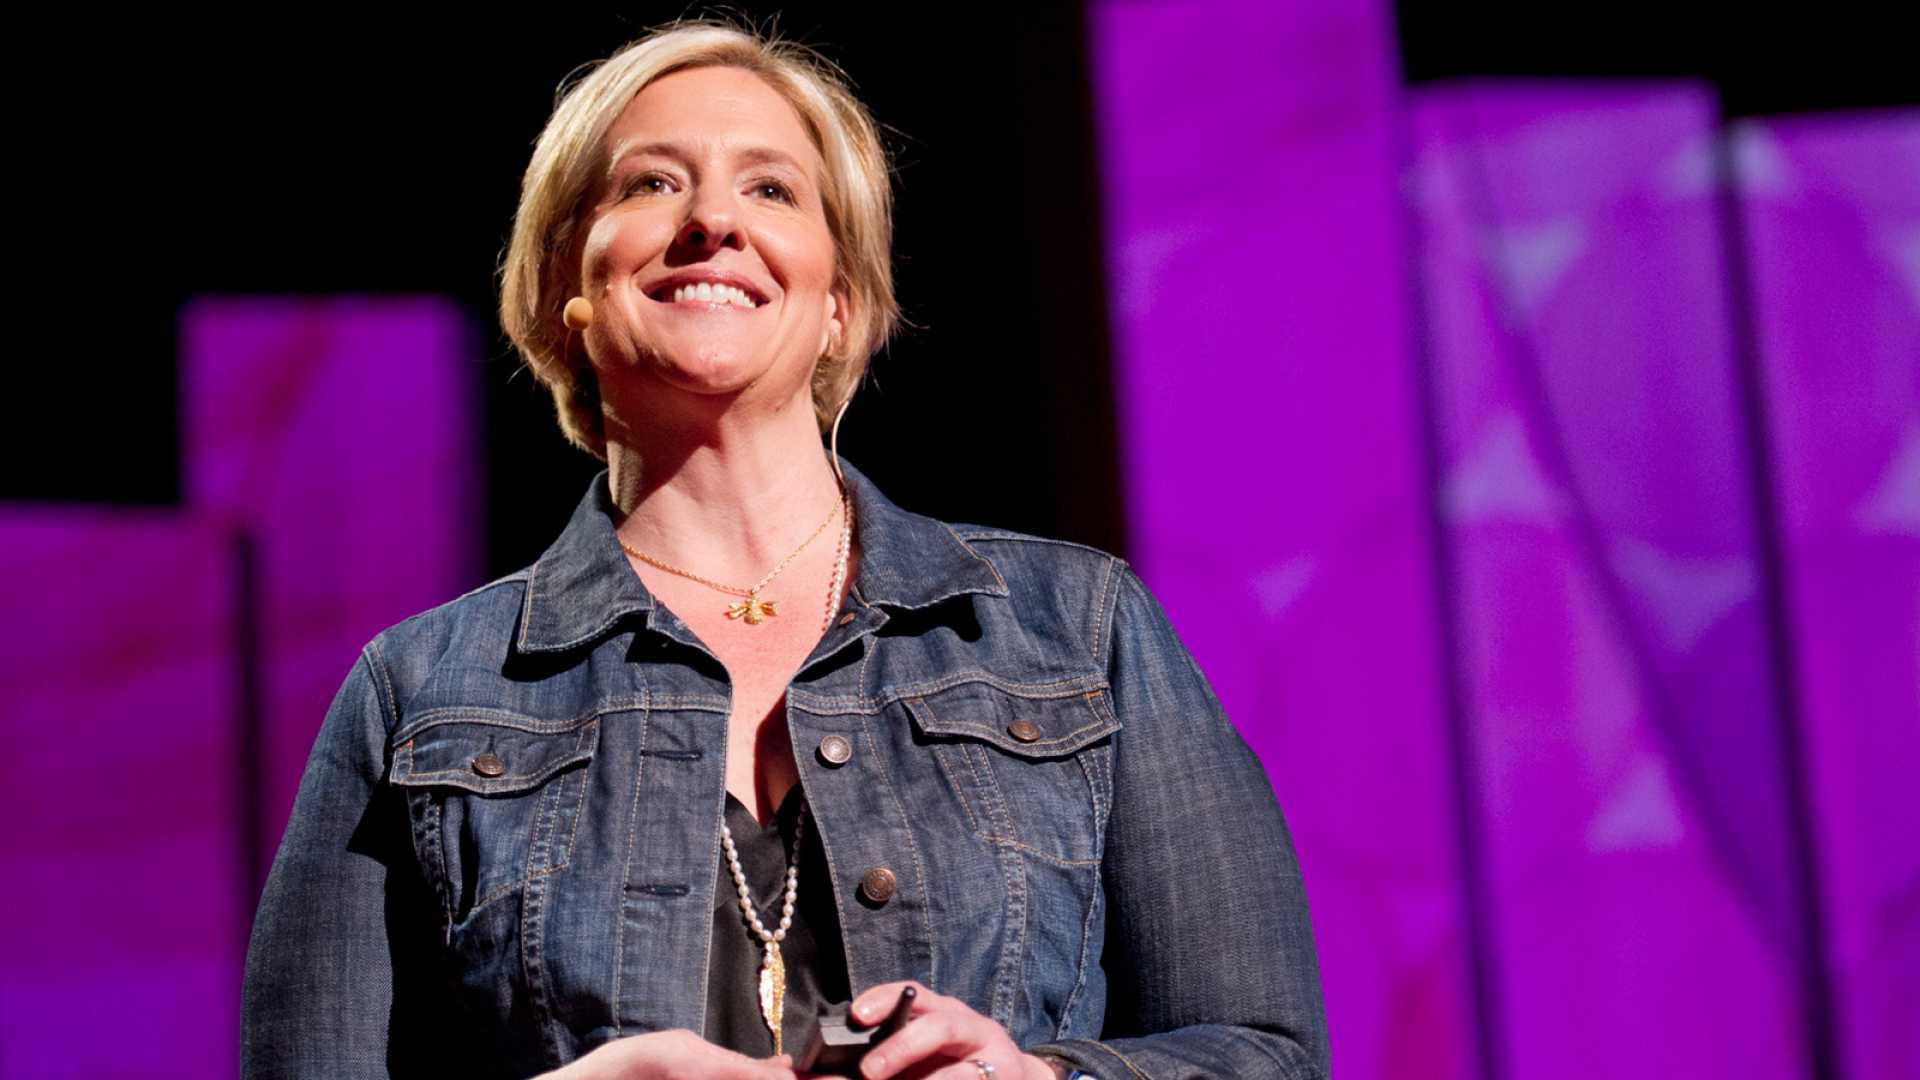 Brené Brown at TED2012: Full Spectrum.